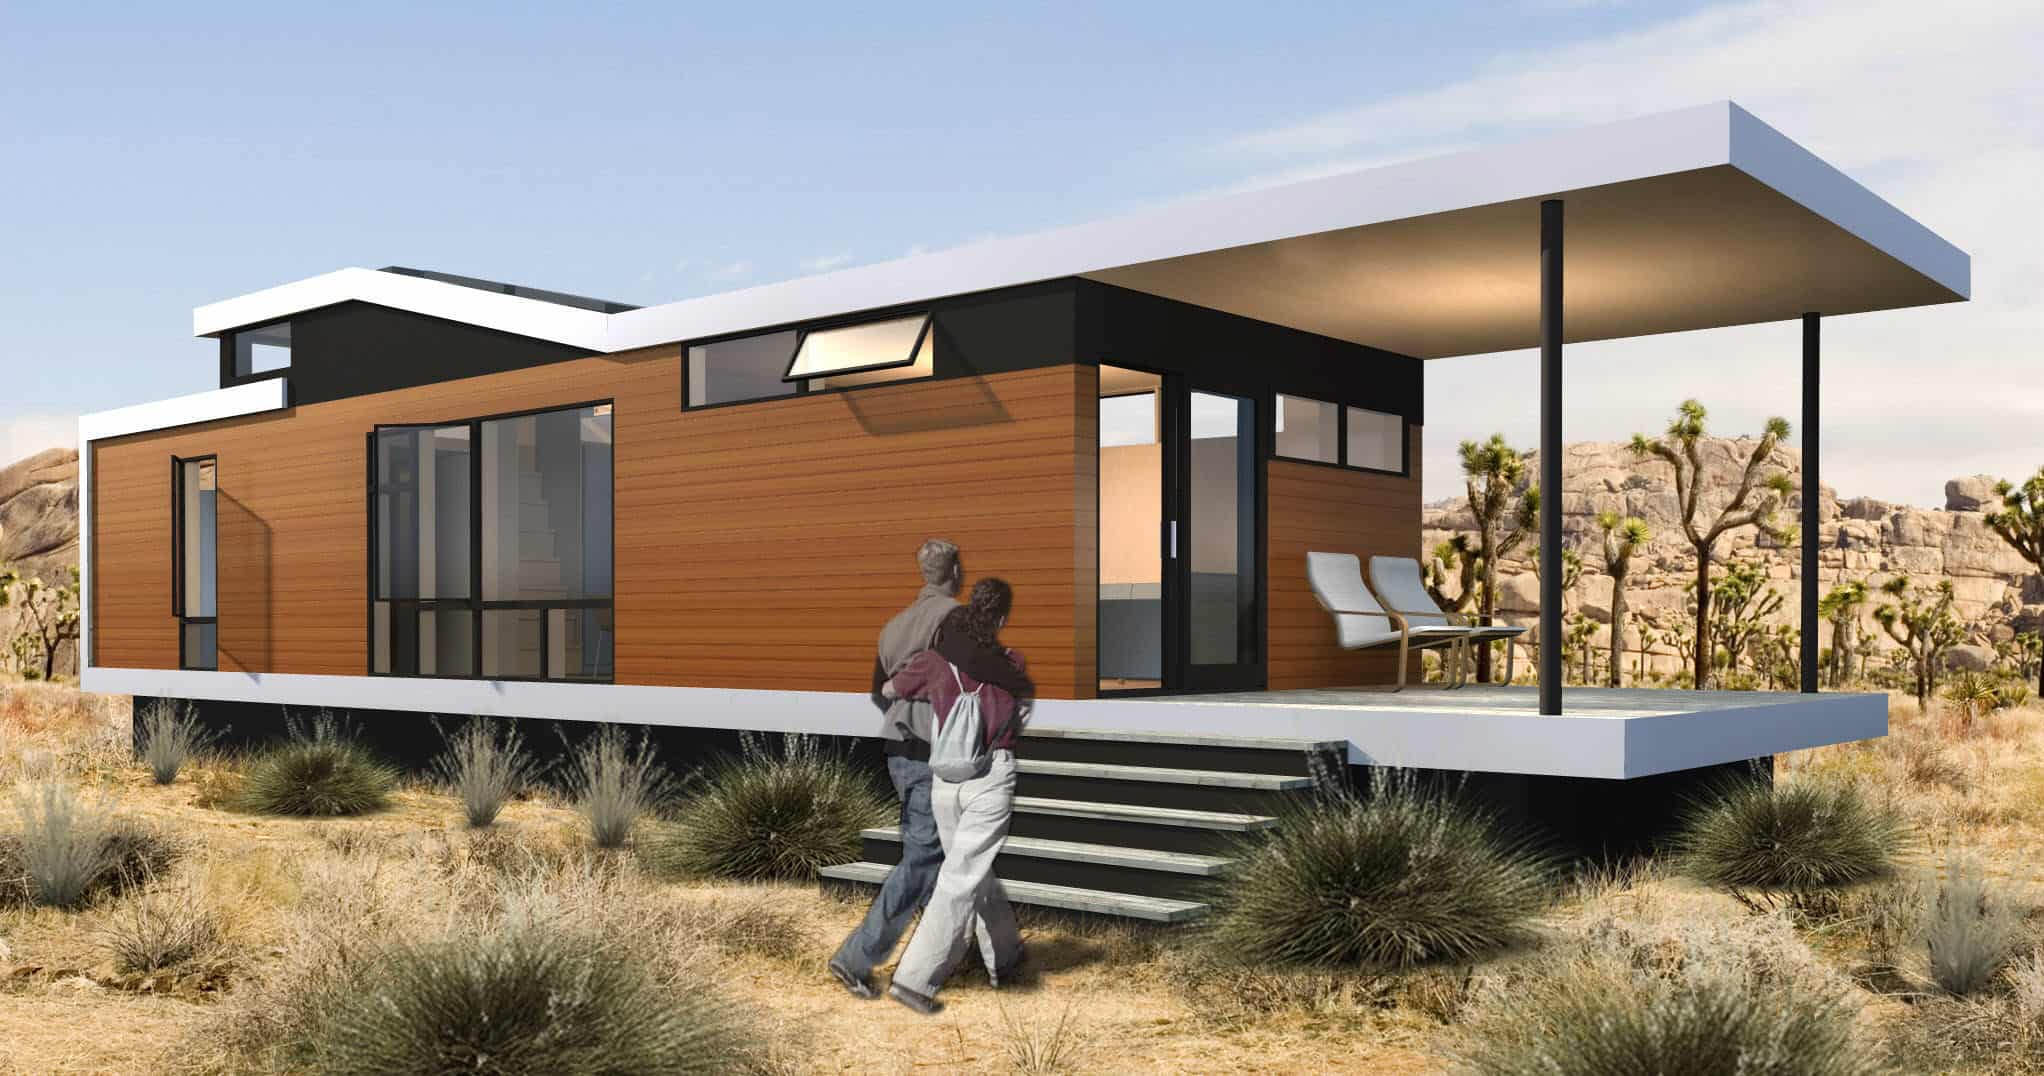 How Can You Cut Down the Cost of a Tiny House